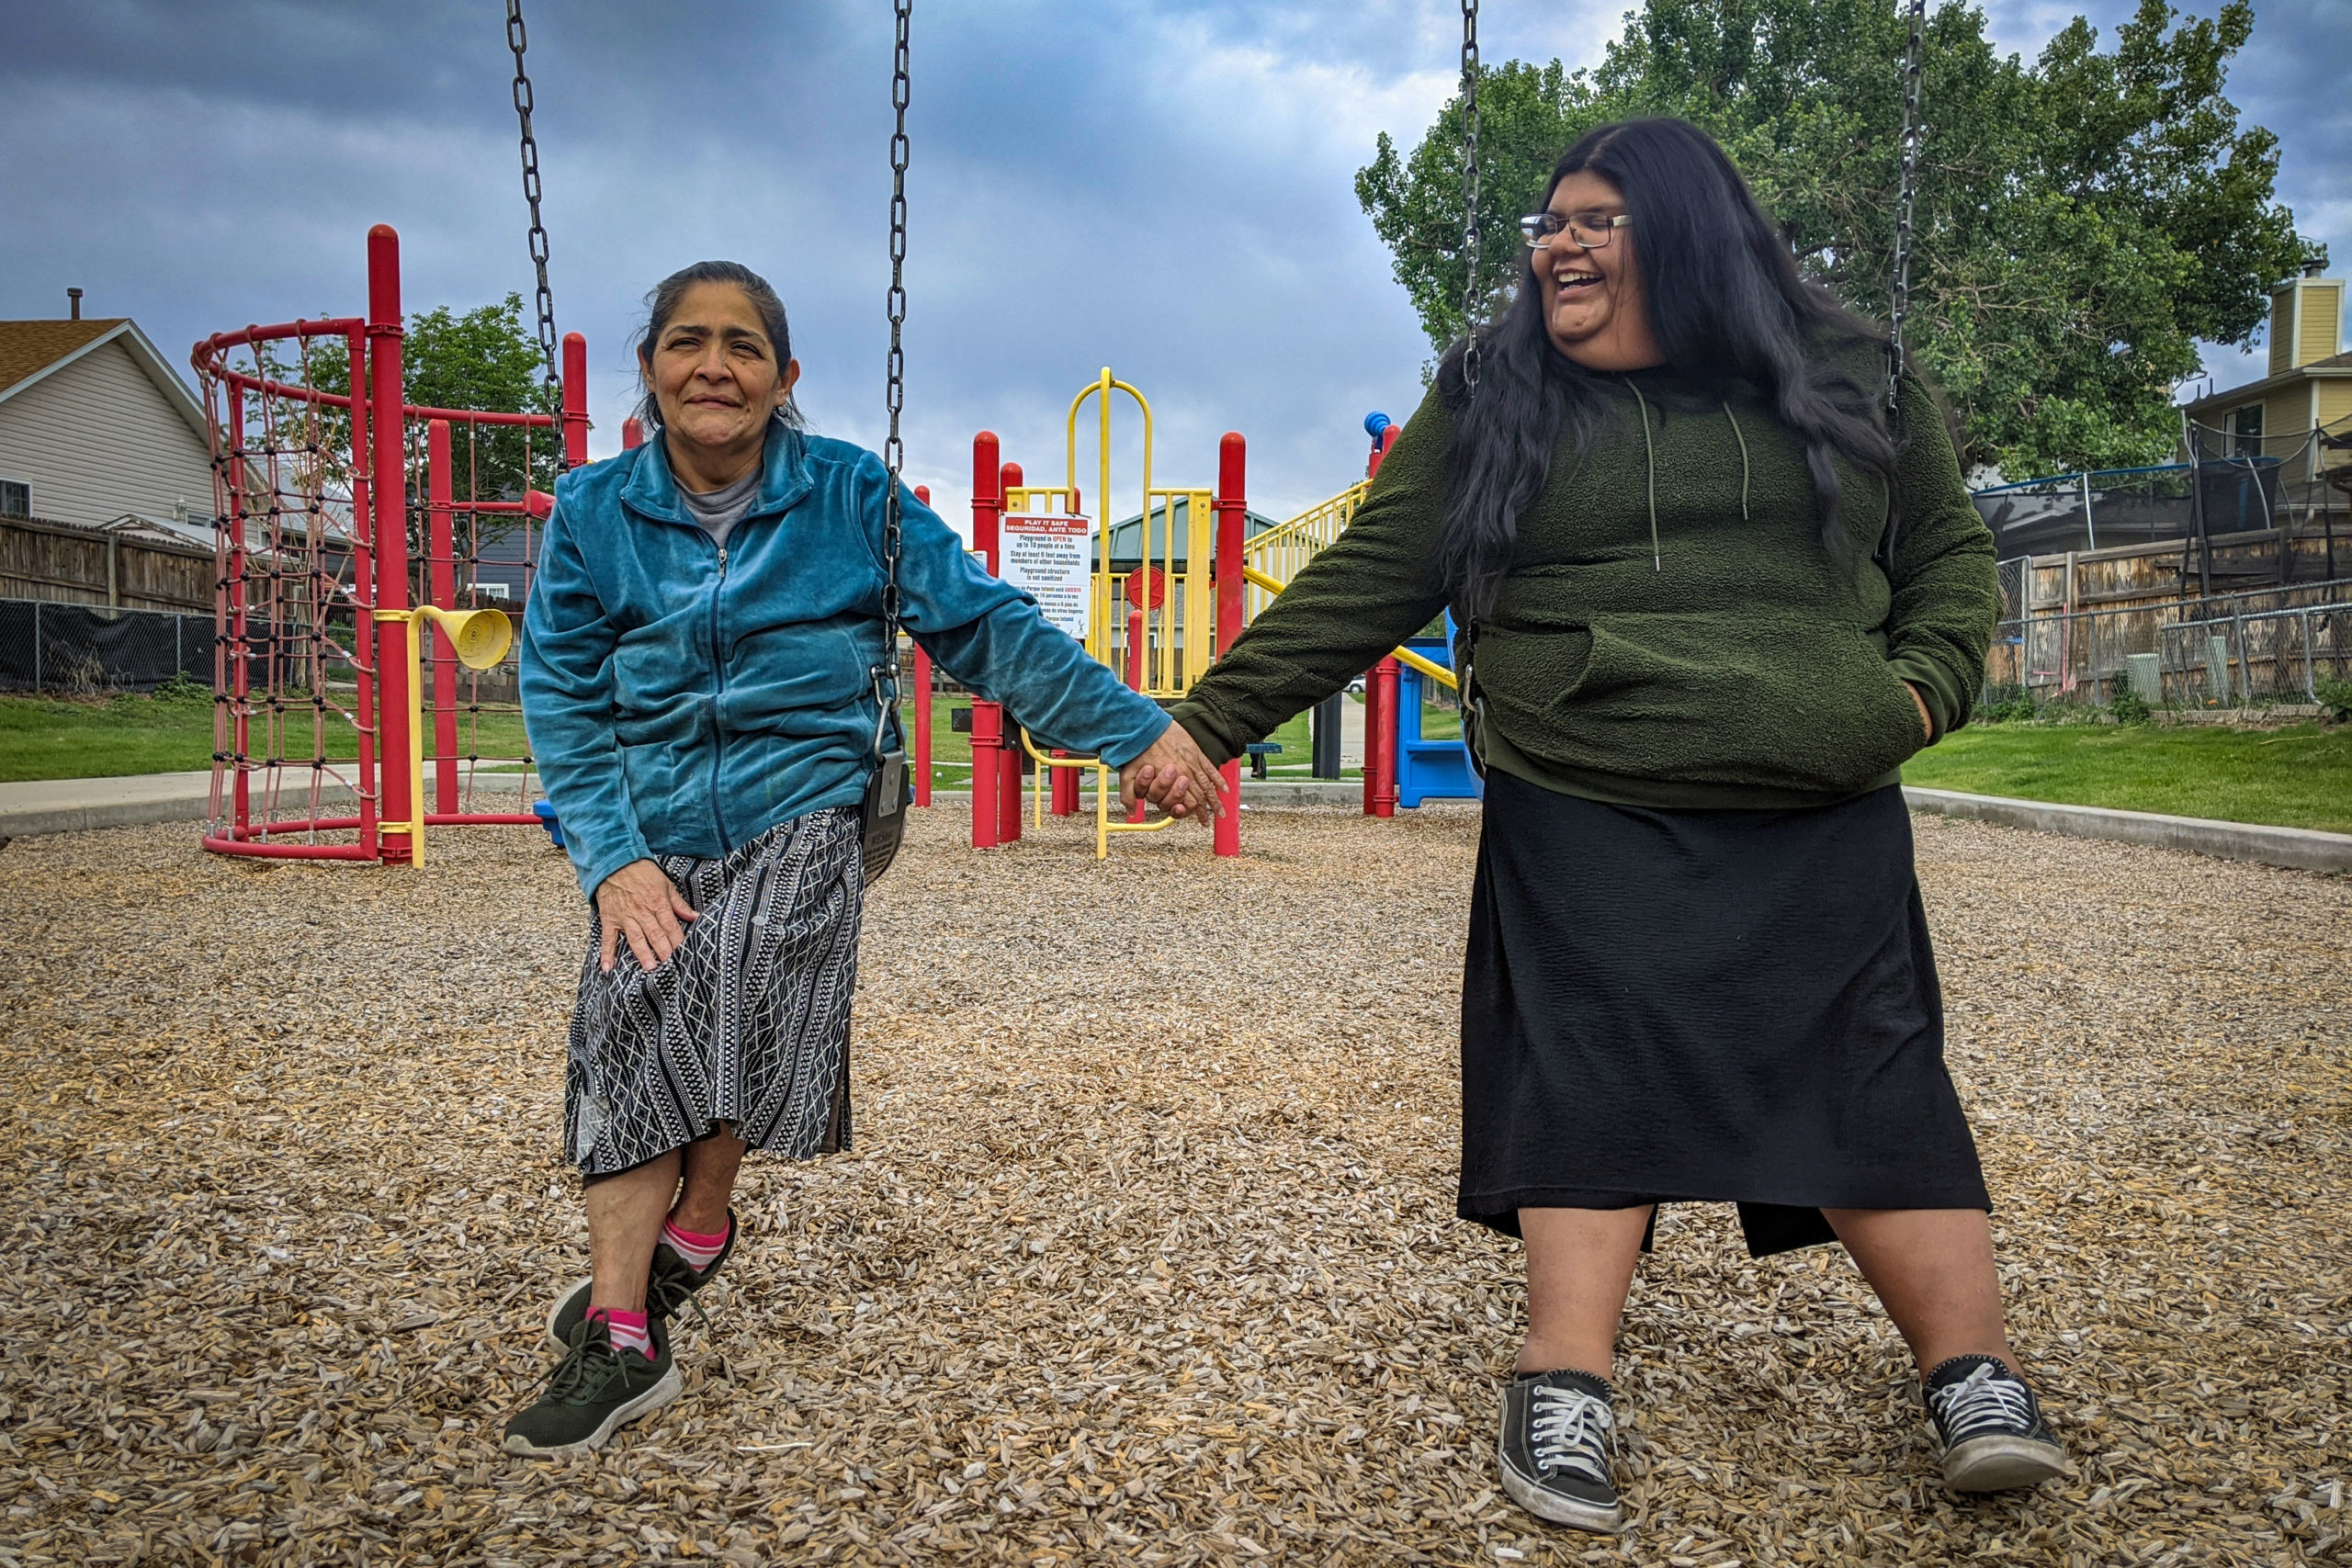 Katherine Aguilar poses with her mother, Holiday Aguilar, at a park near their home in Commerce City.